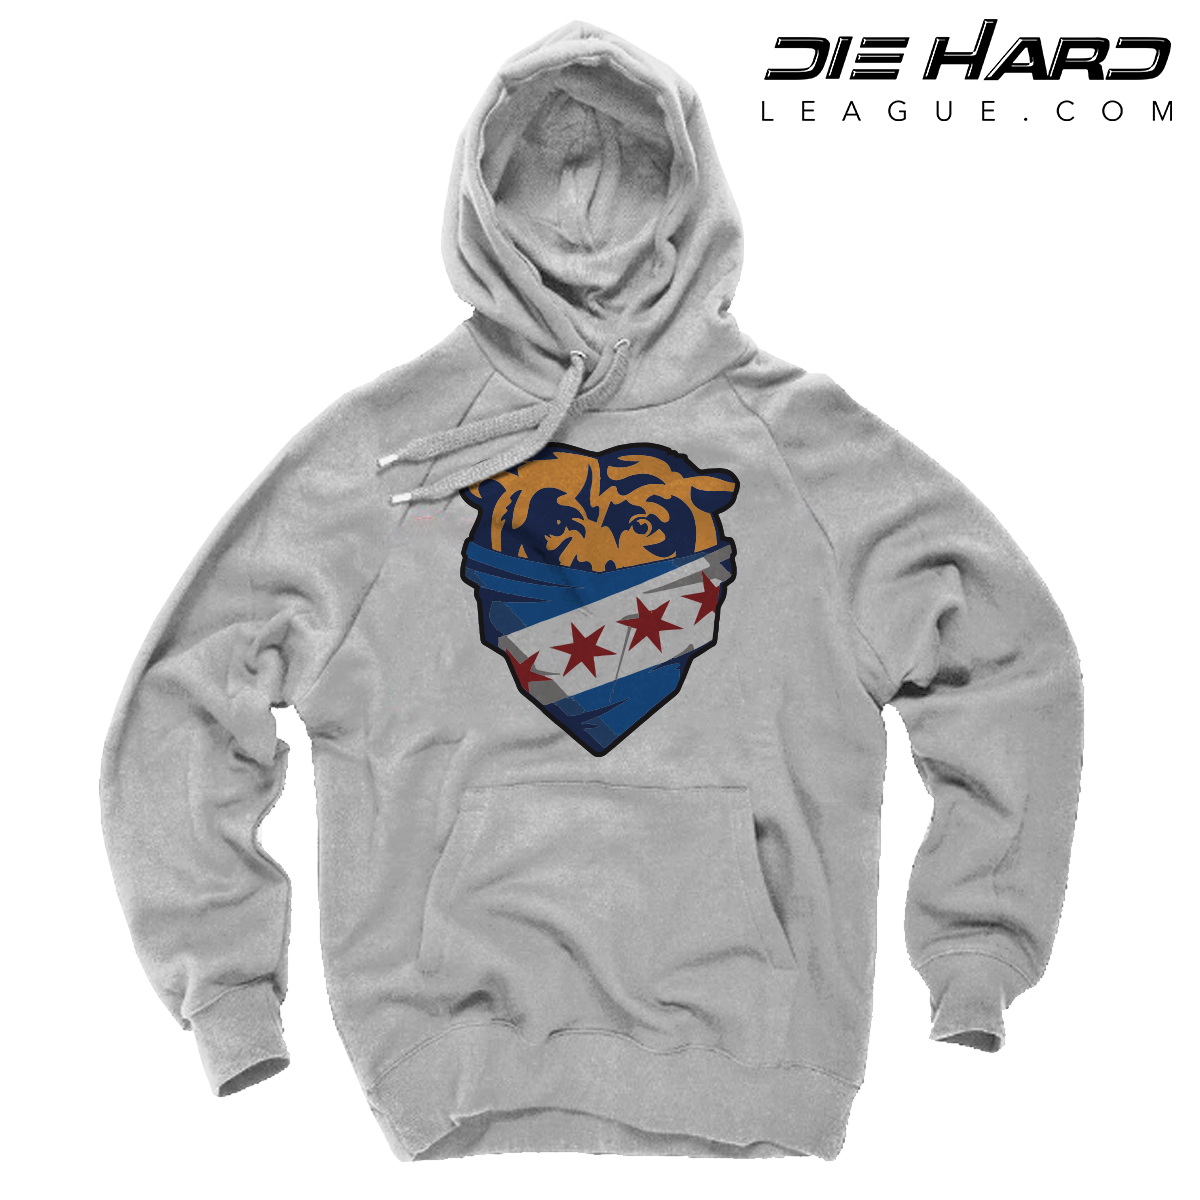 cheap chicago bears sweatshirts